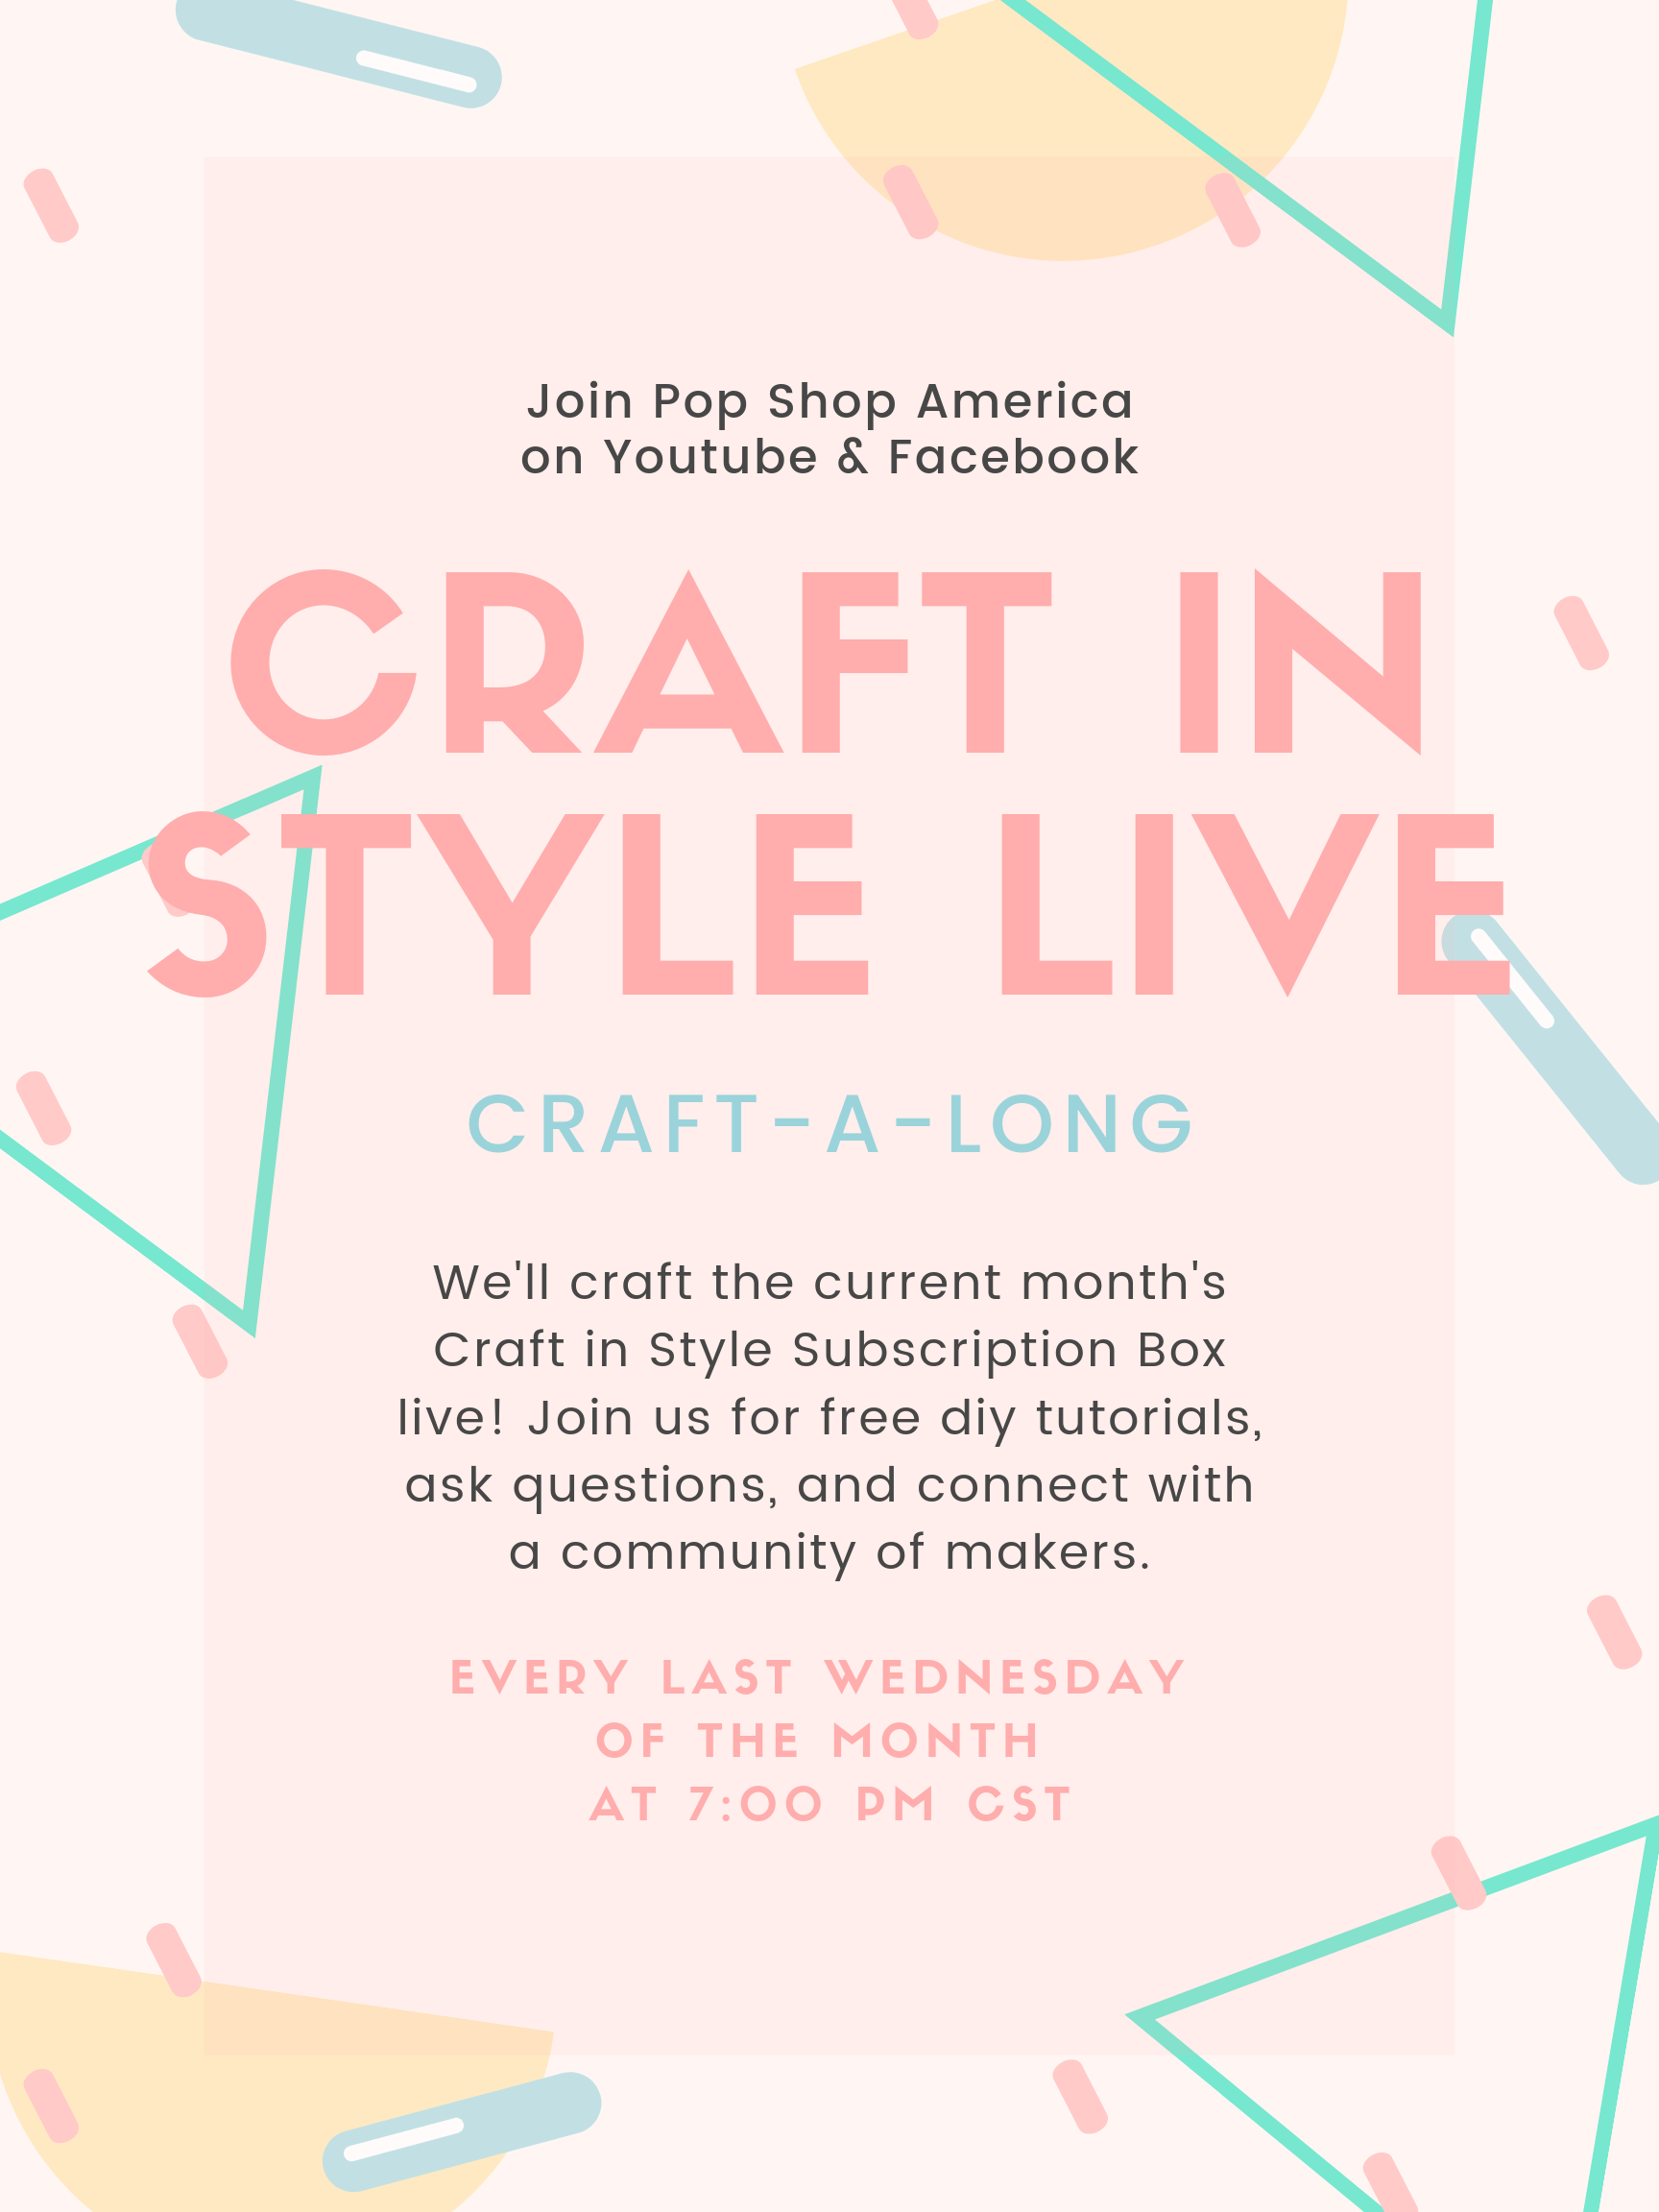 craft in style craft-a-long live pop shop america